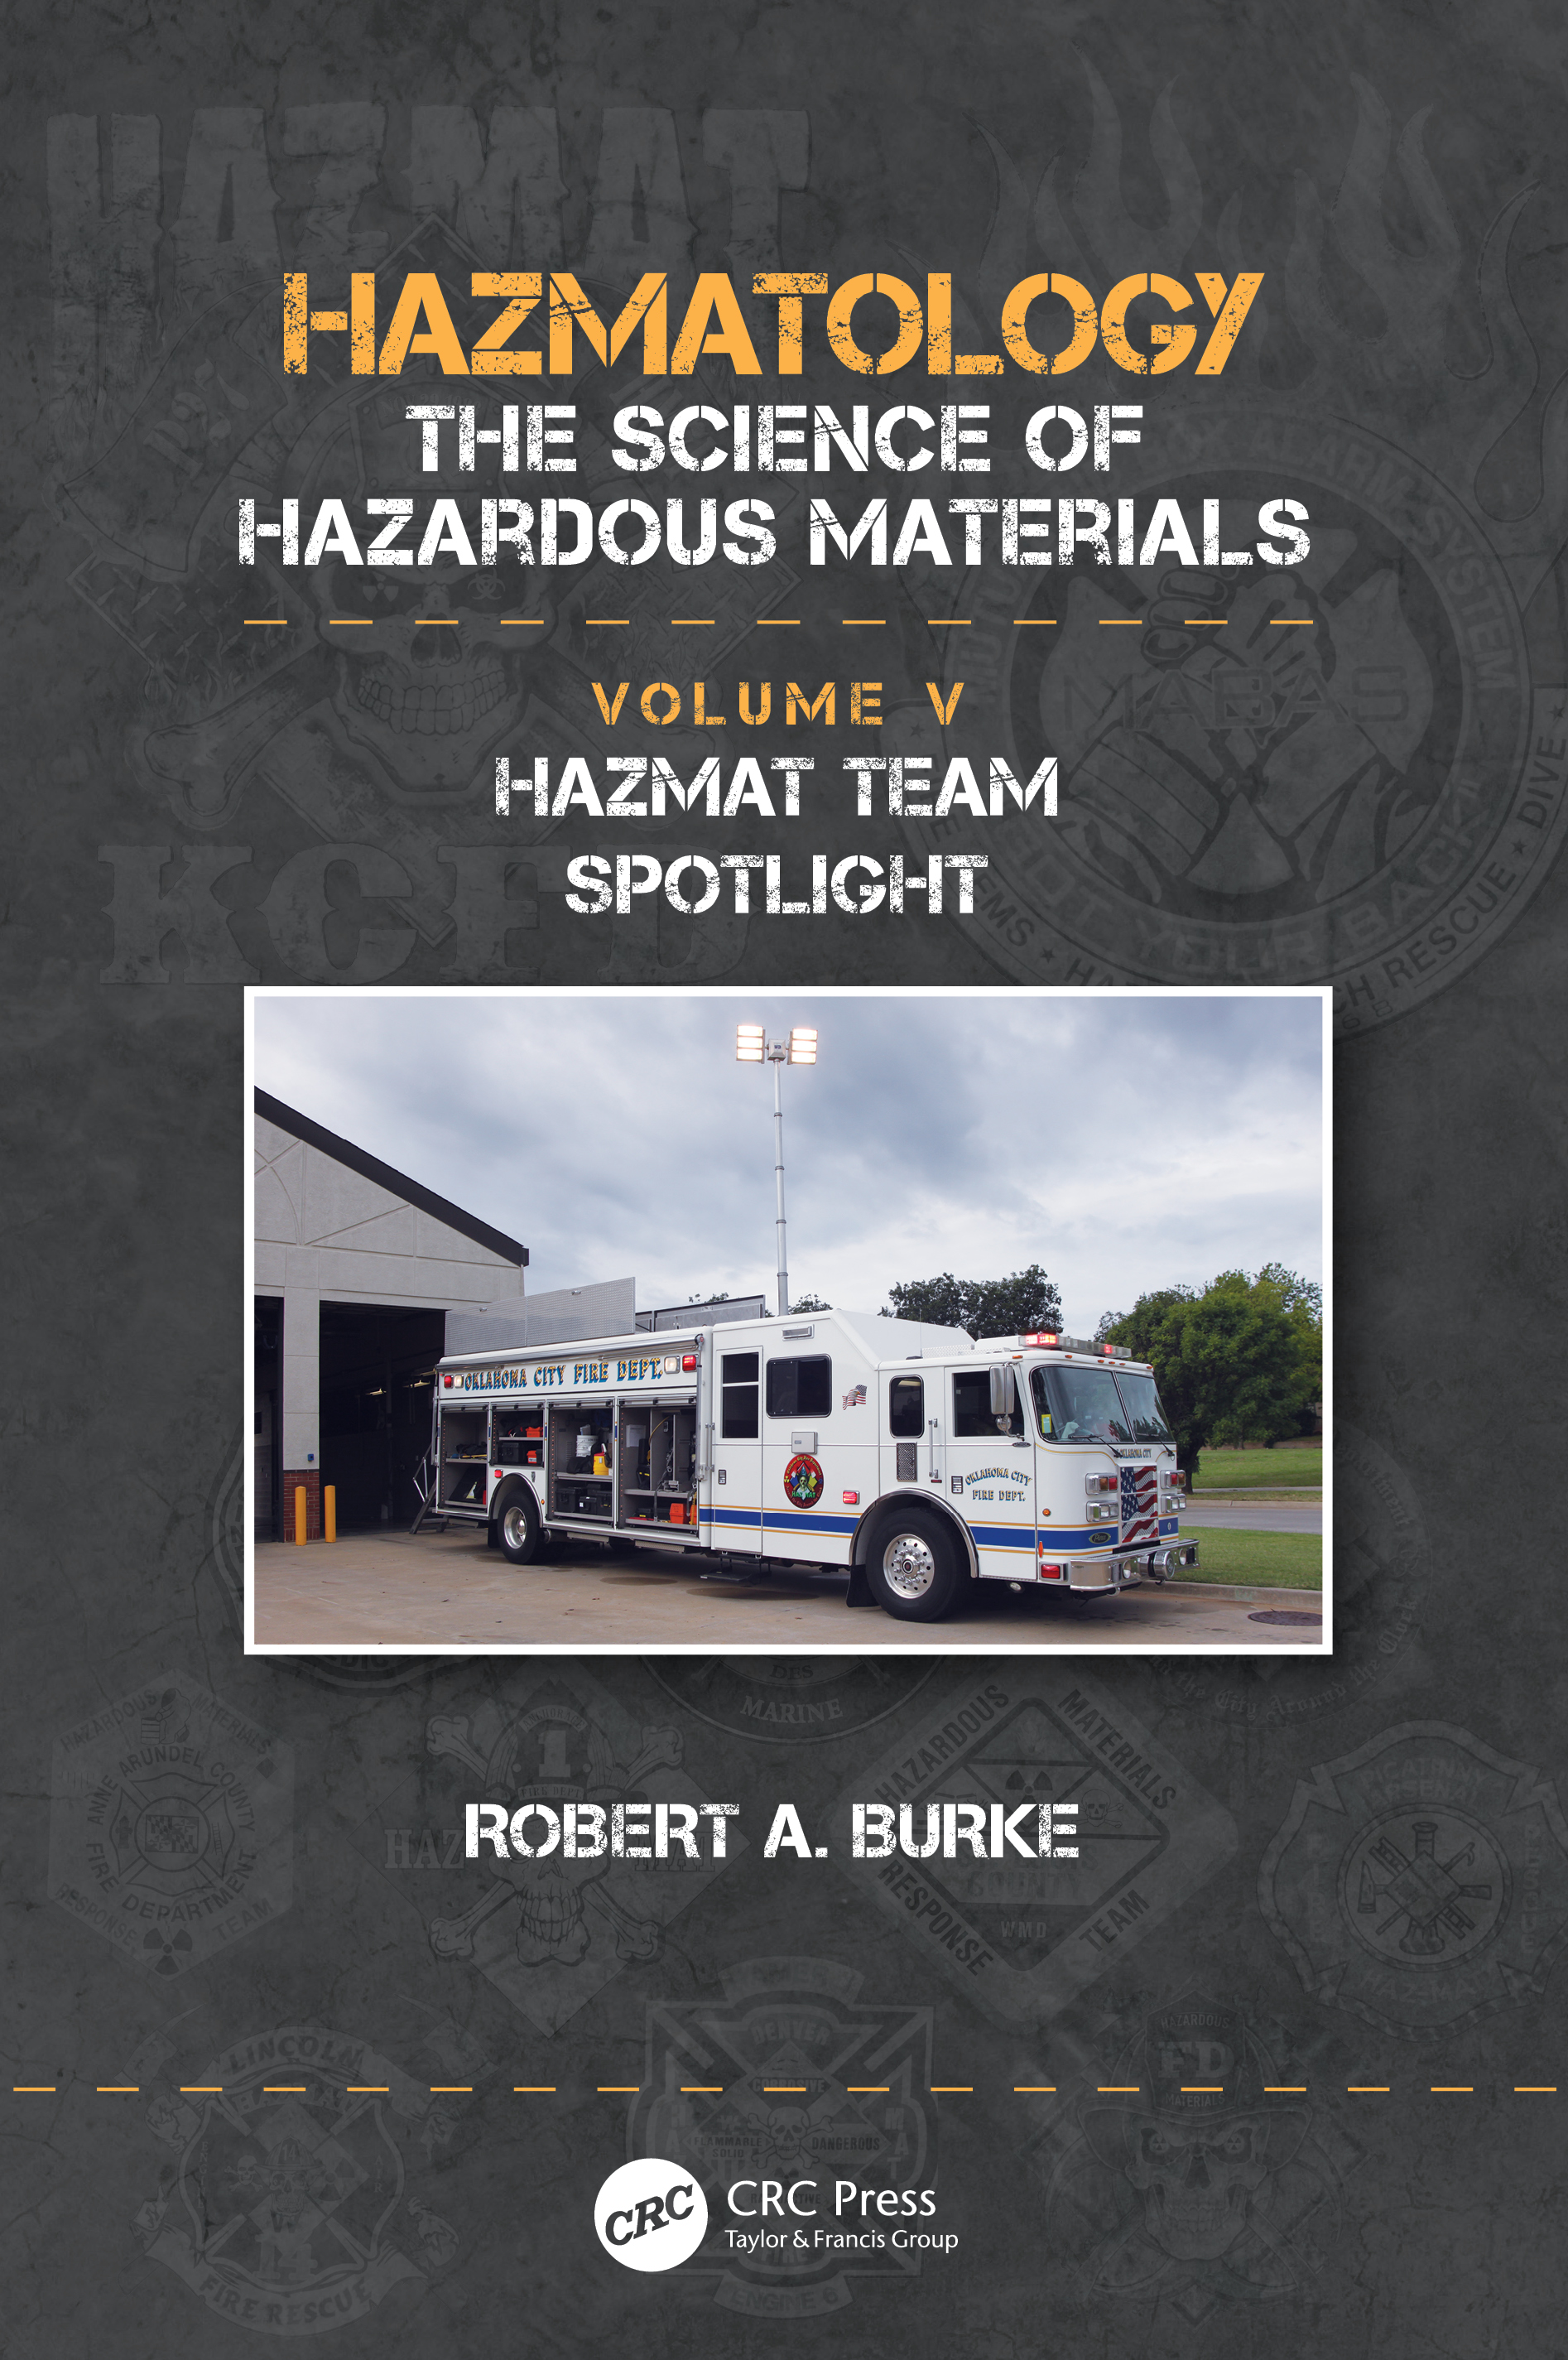 Hazmat Team Spotlight book cover